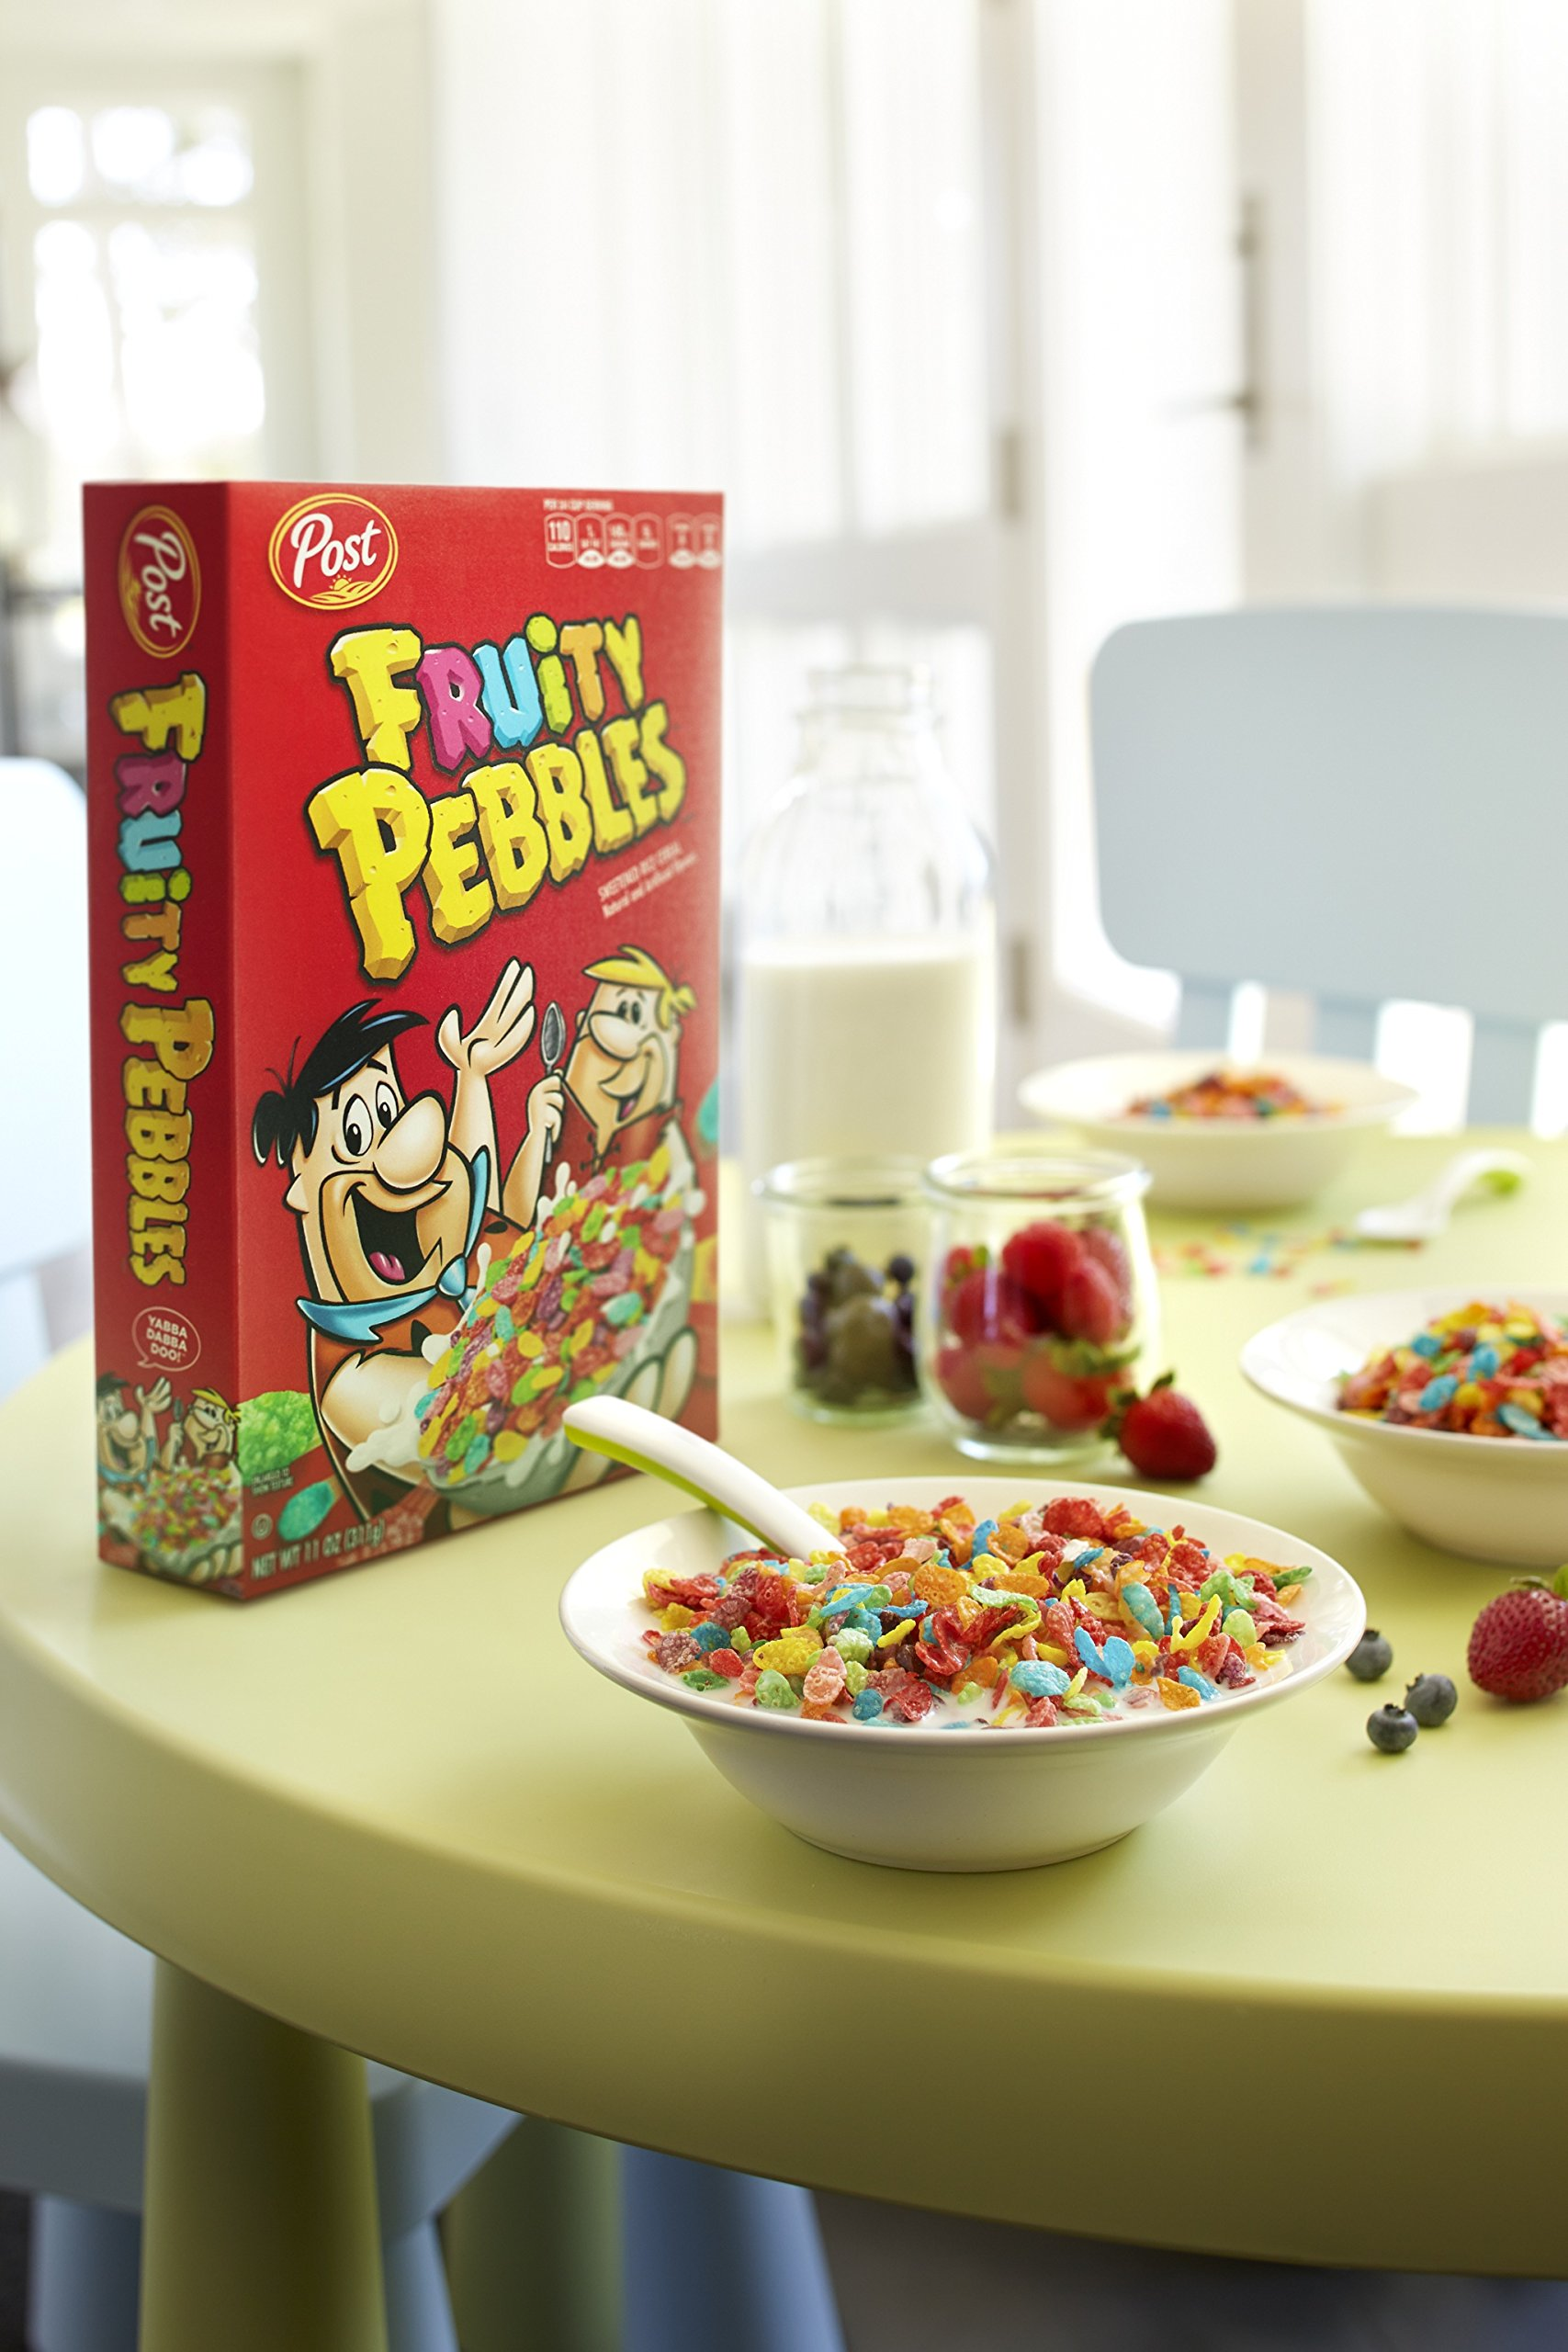 Post Fruity Pebbles GlutPost Fruity Pebbles Gluten Free Cereal, 36 Oz - Pack of 6 by Post